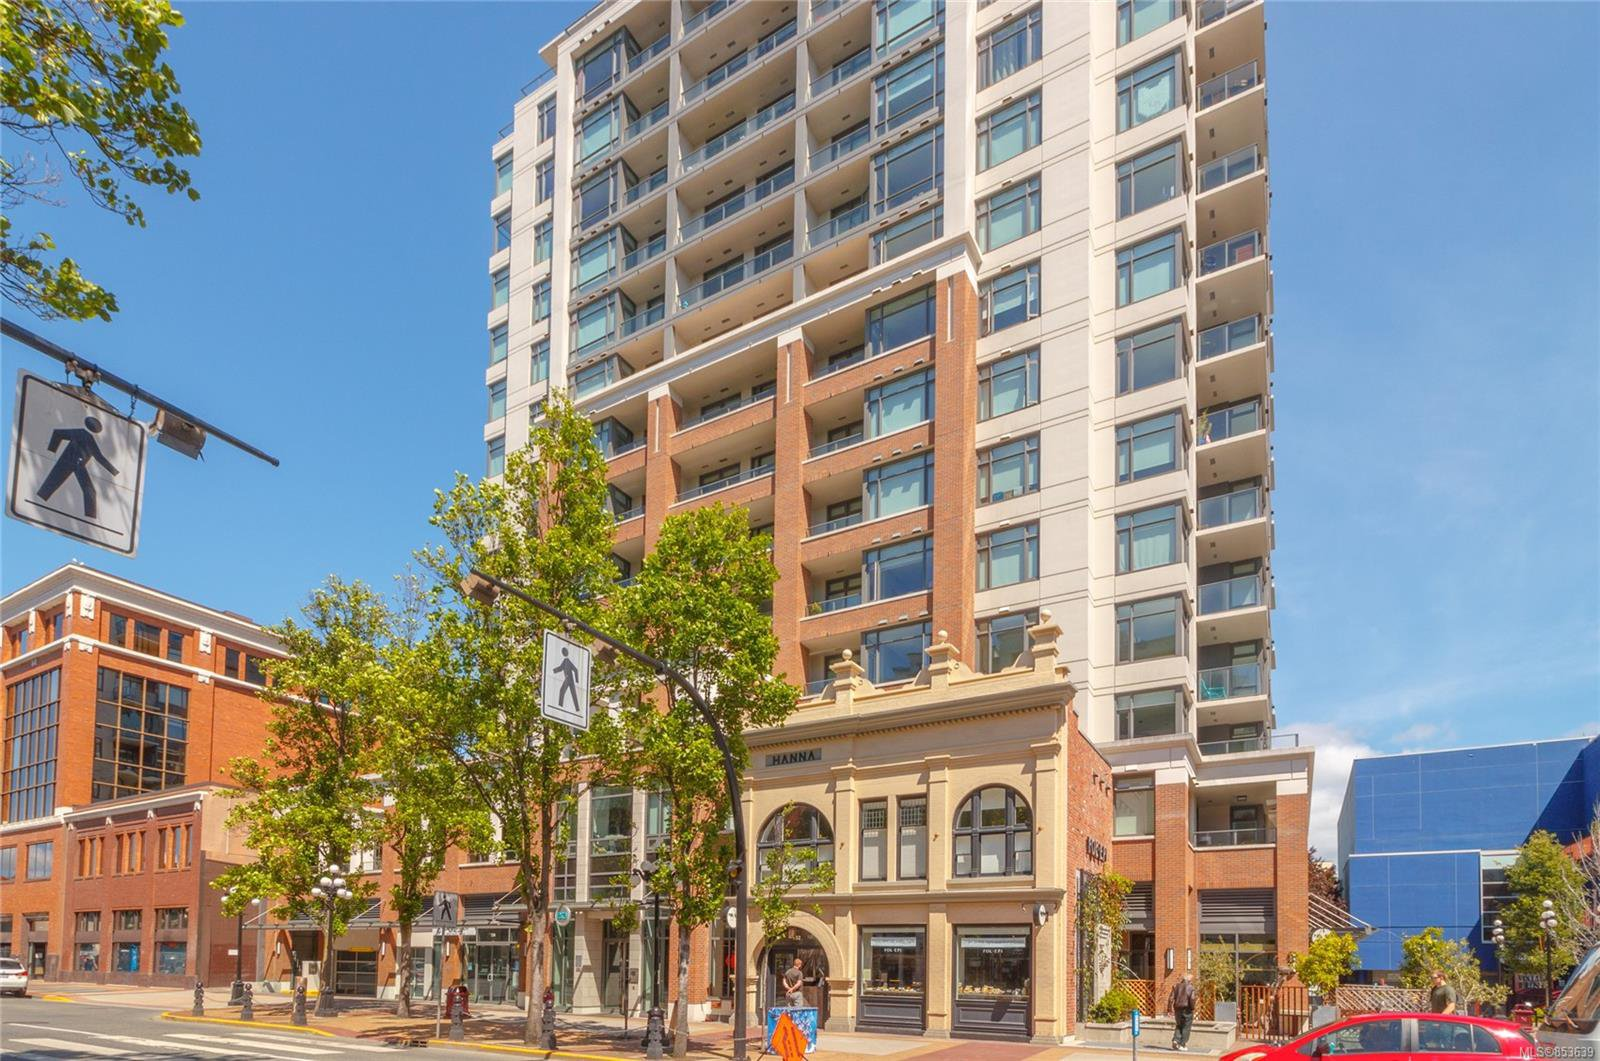 Main Photo: 403 728 Yates St in : Vi Downtown Condo Apartment for sale (Victoria)  : MLS®# 853639